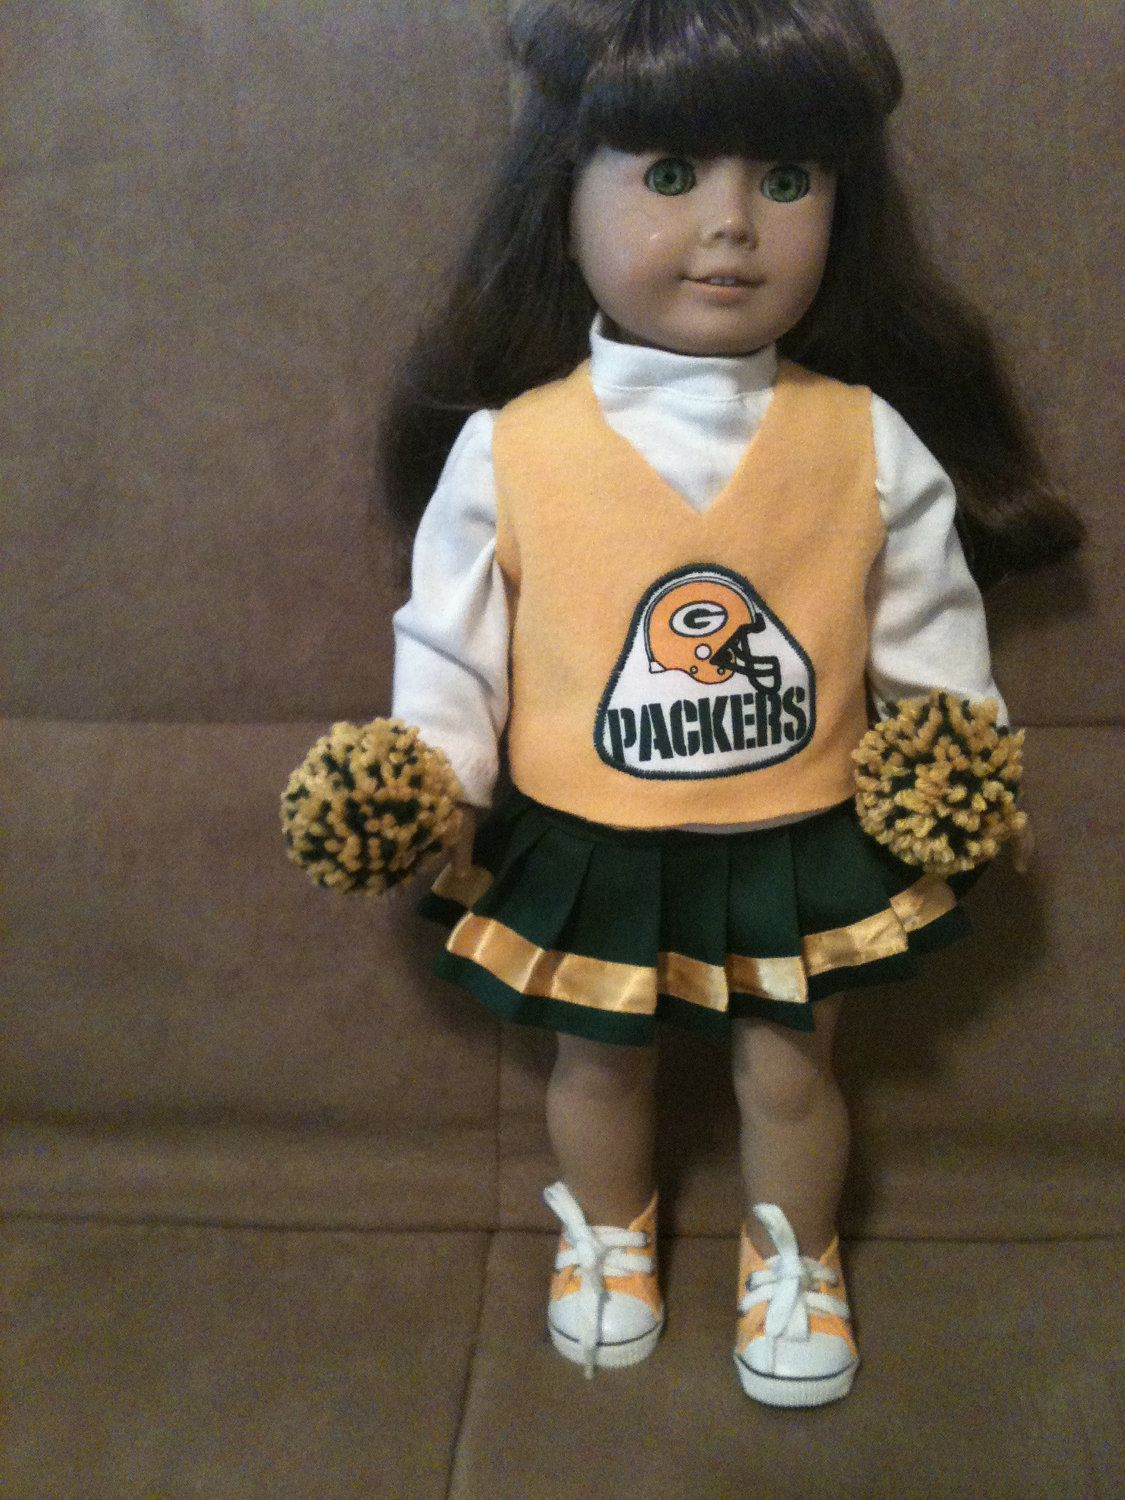 18 inch doll (modeled by American Girl) Green Bay Packers Cheerleading outfit with shoes #18inchcheerleaderclothes 18 inch doll (modeled by American Girl) Green Bay Packers Cheerleading outfit with shoes. $25.00, via Etsy. #18inchcheerleaderclothes 18 inch doll (modeled by American Girl) Green Bay Packers Cheerleading outfit with shoes #18inchcheerleaderclothes 18 inch doll (modeled by American Girl) Green Bay Packers Cheerleading outfit with shoes. $25.00, via Etsy. #18inchcheerleaderclothes 18 #18inchcheerleaderclothes